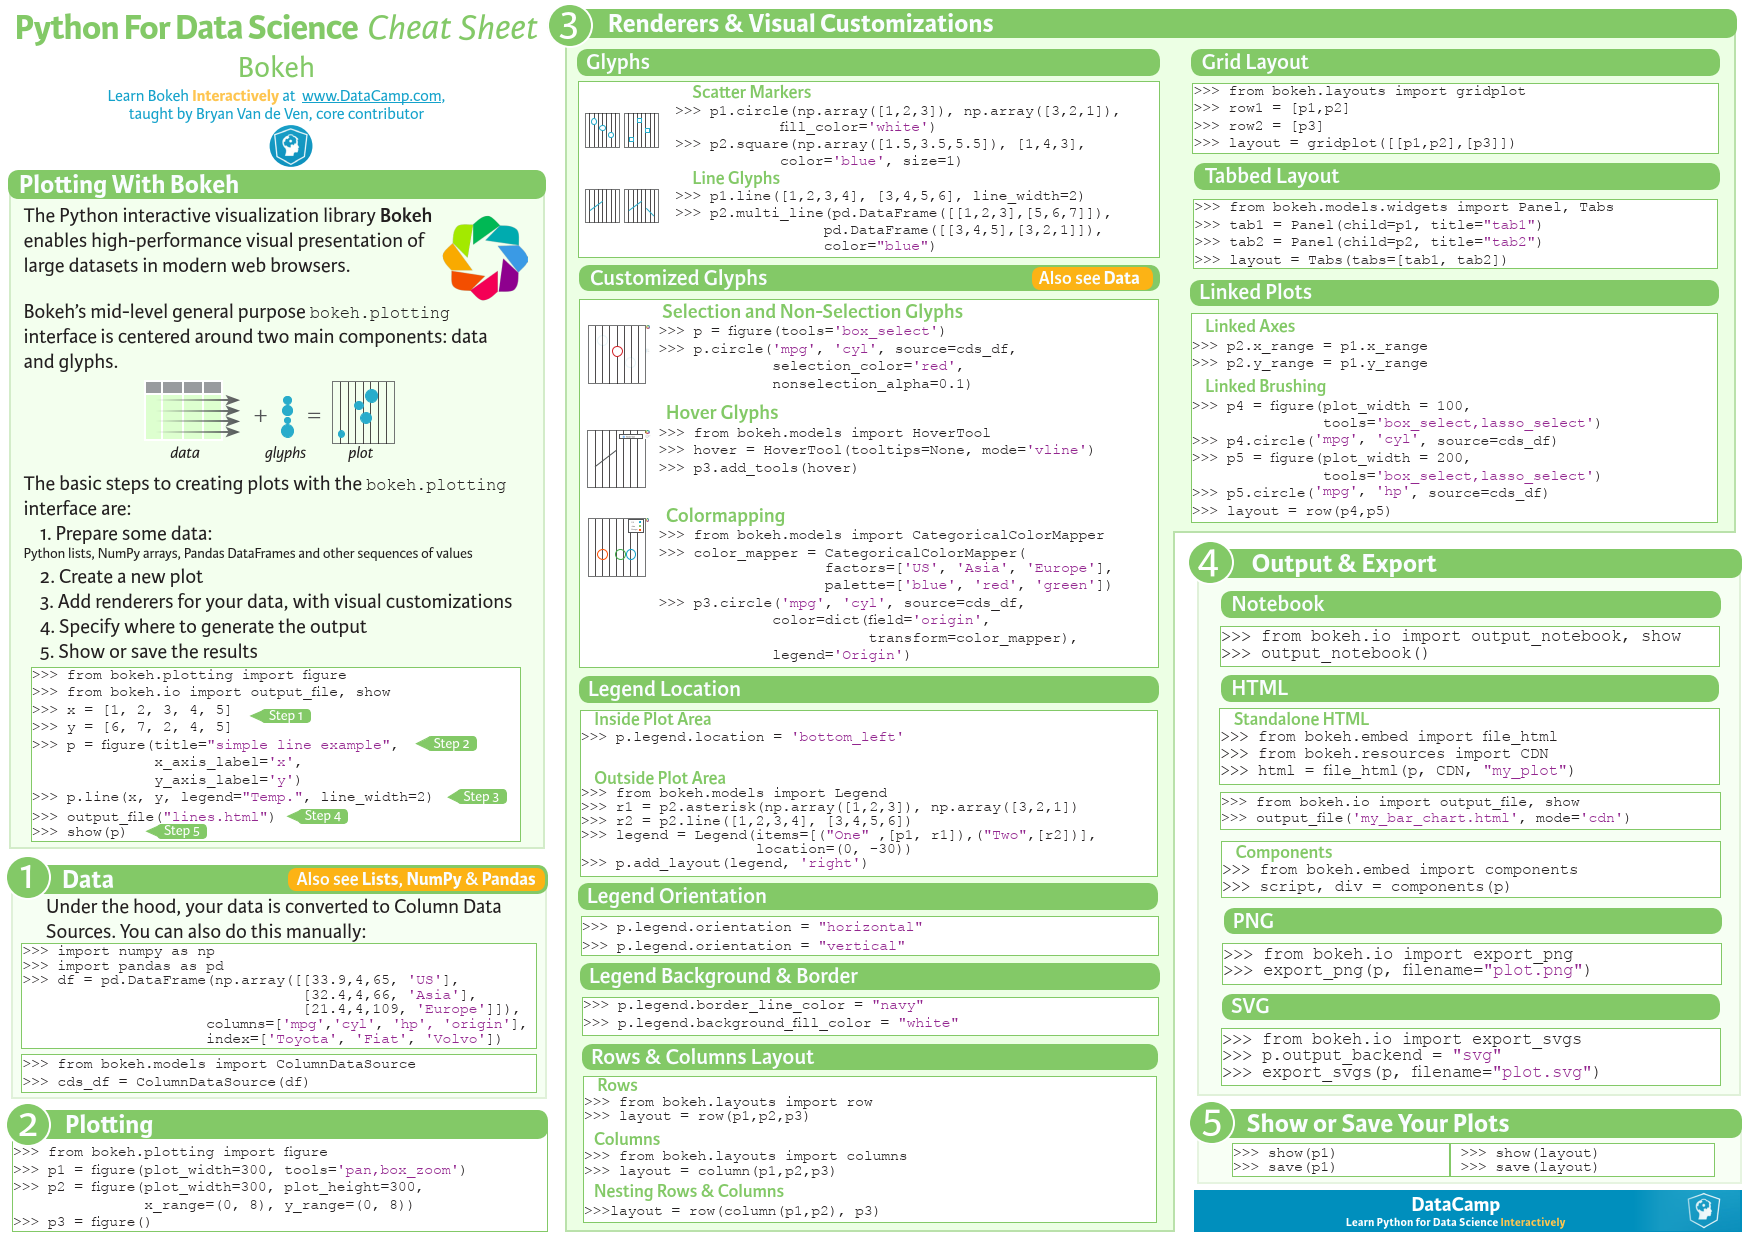 Bokeh Visualization - Python for Data Science [Cheat Sheet